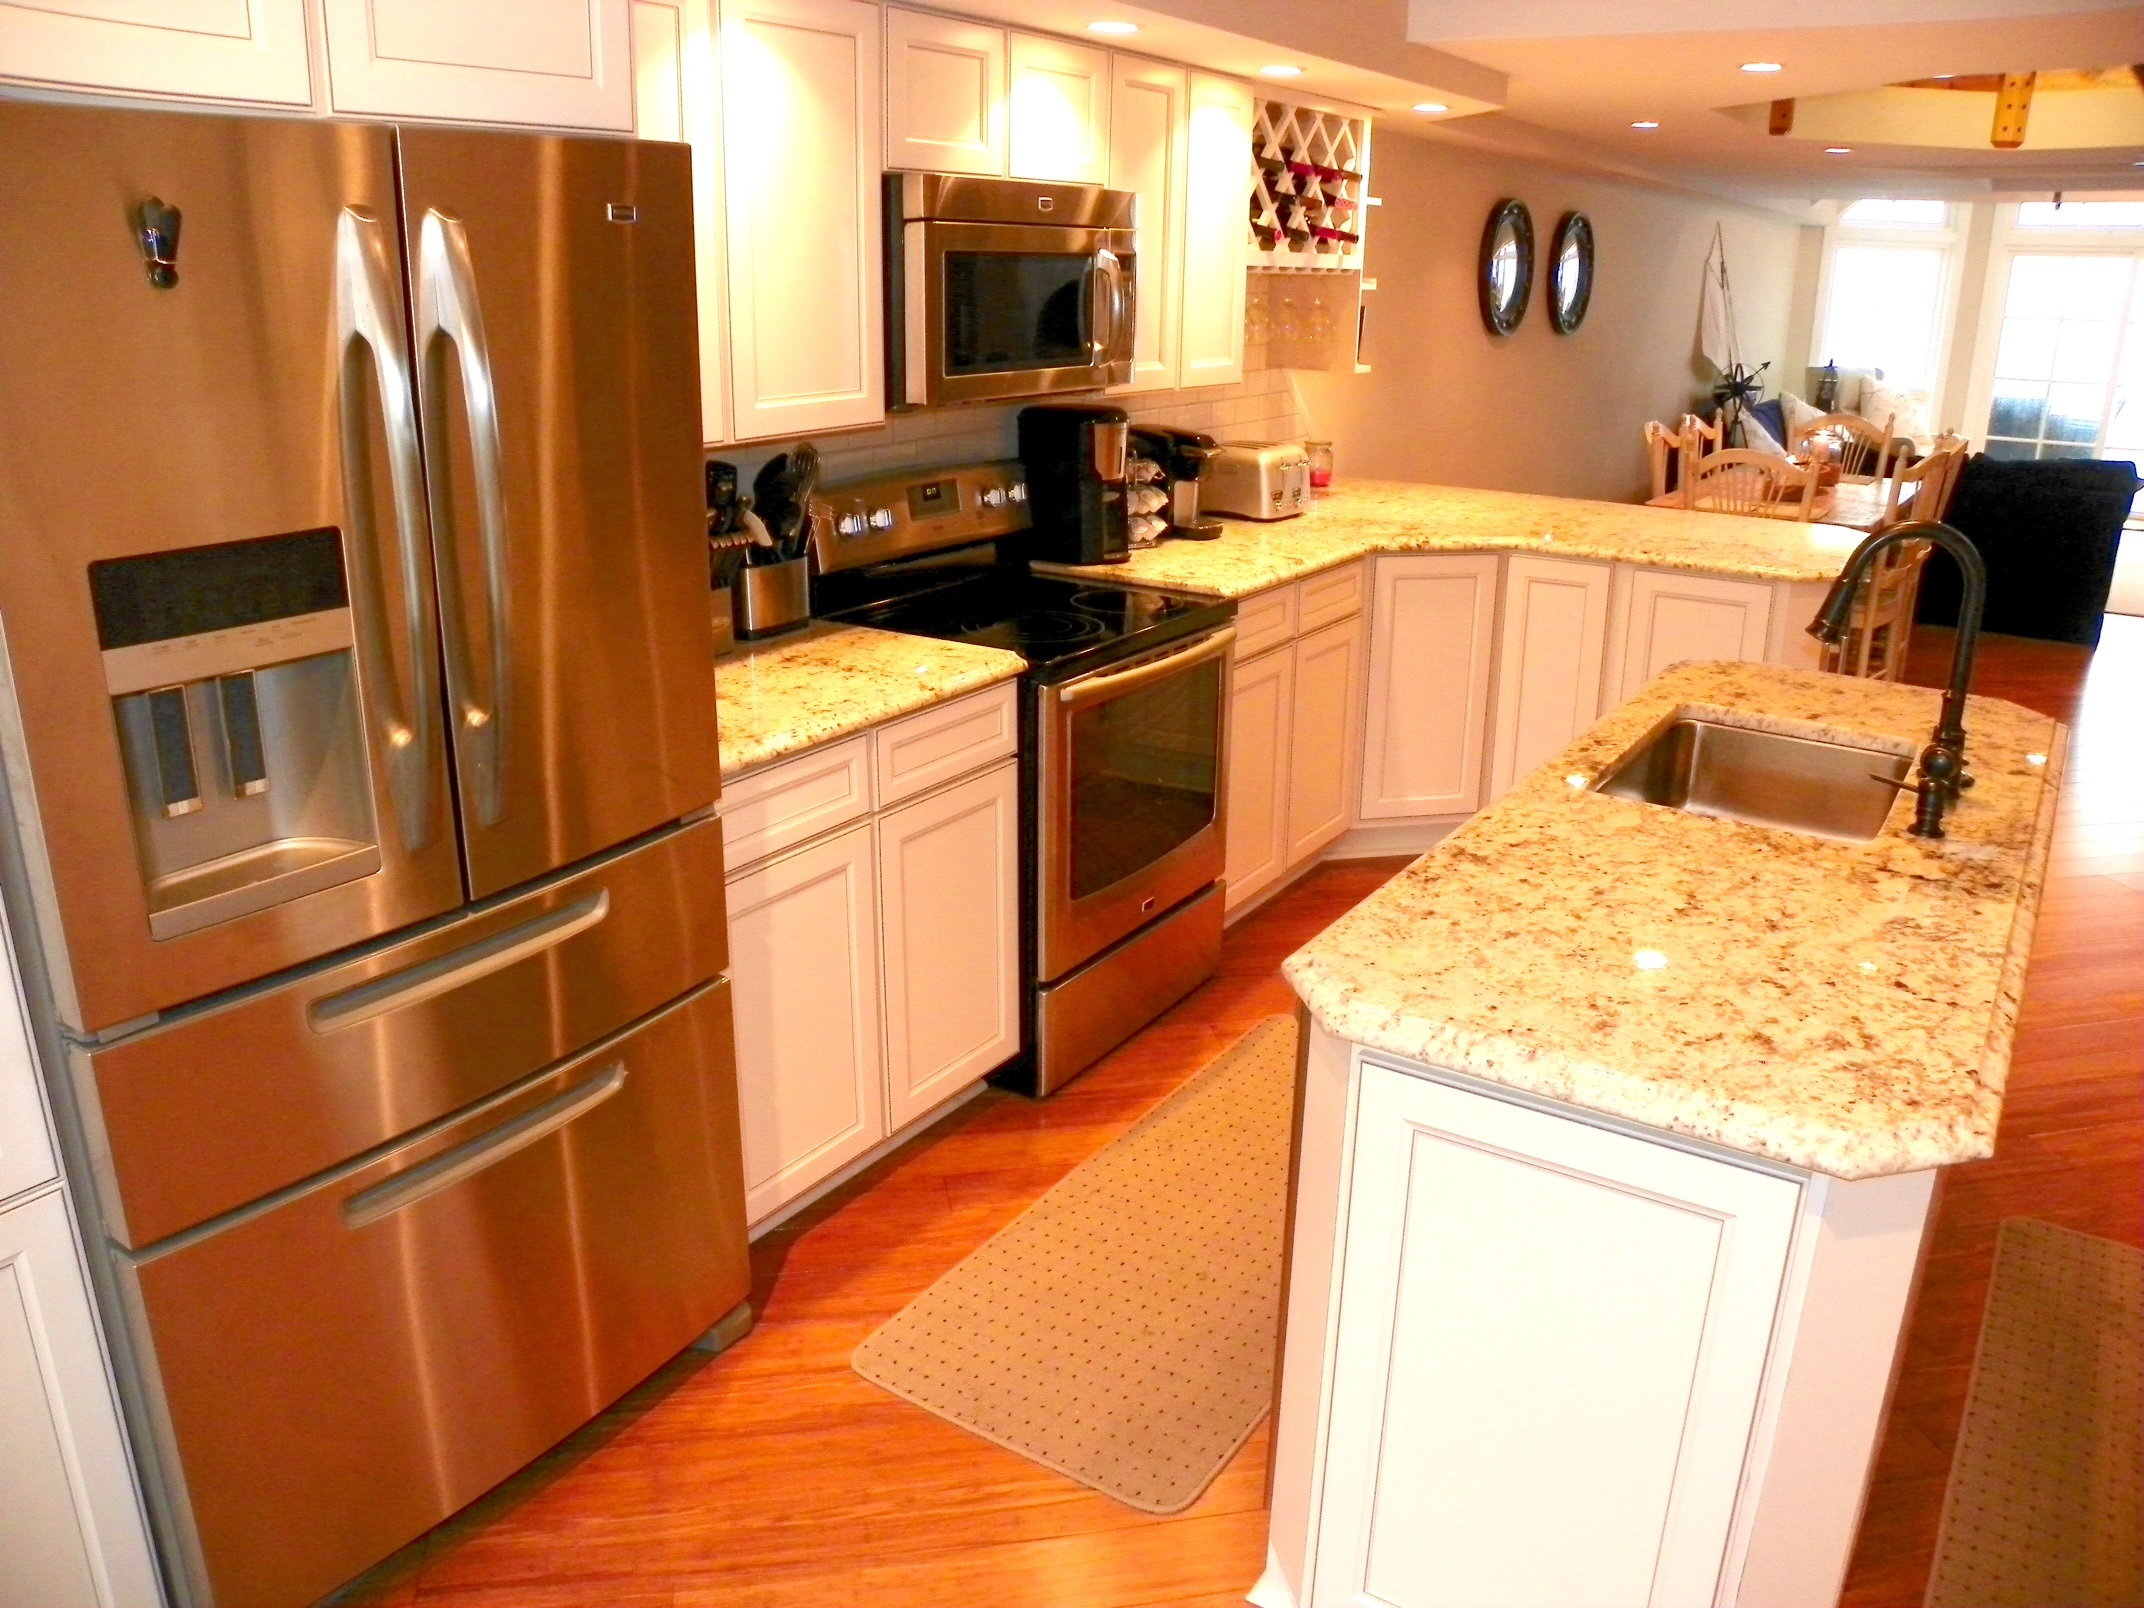 kitchen remodel contractors refurbished cabinets for sale remodeling contractor potomac md